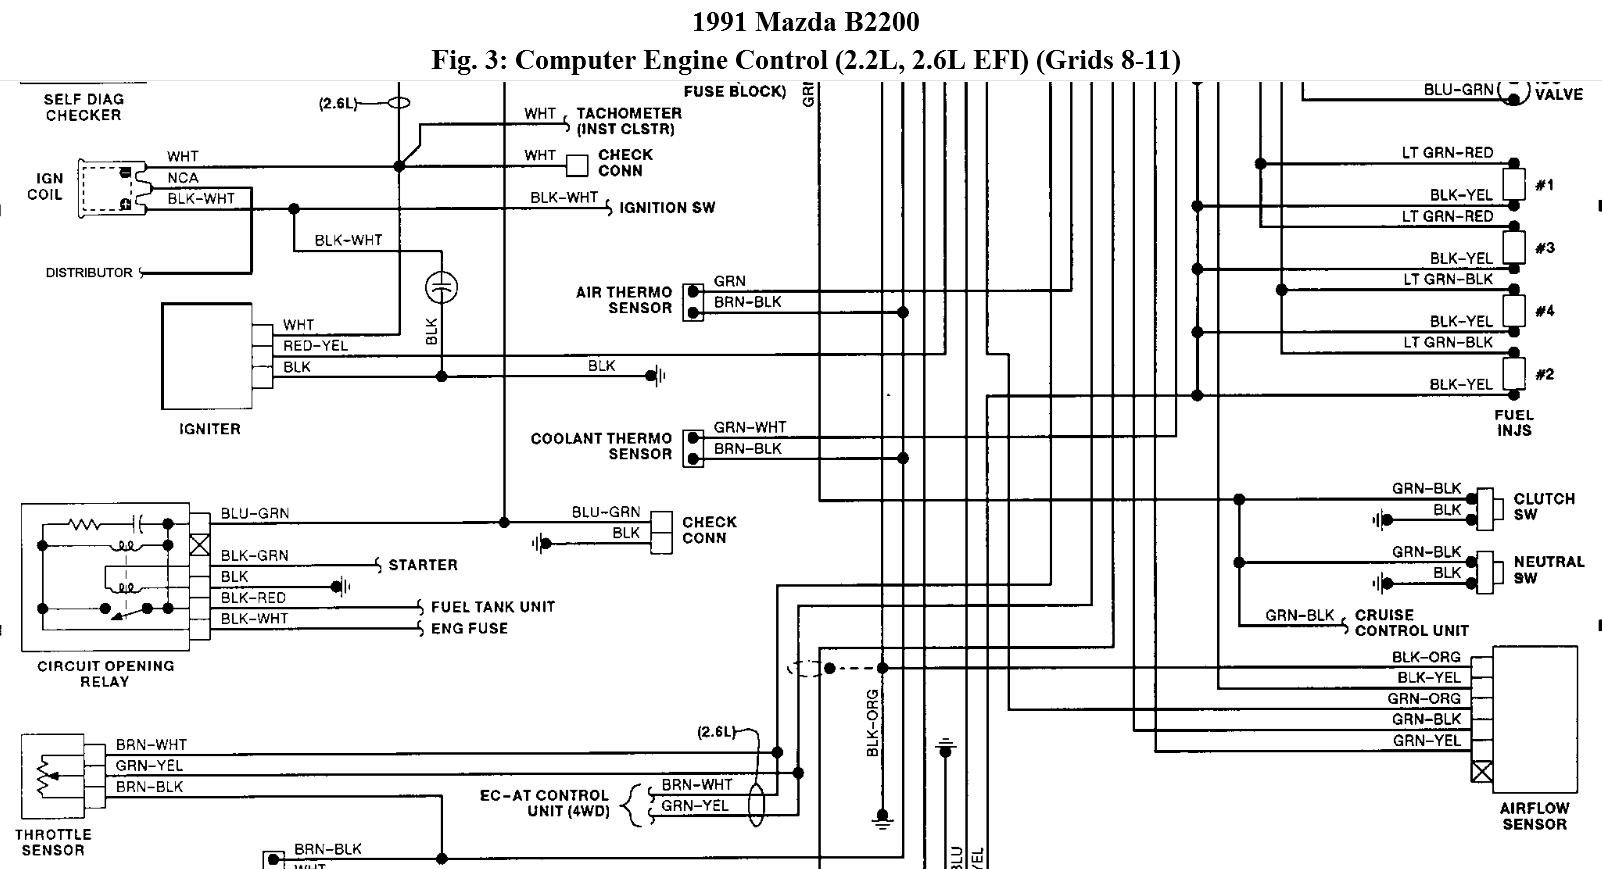 Mazda B2000 Ignition Wiring Diagram 1991 B2200 Diagrams Engine Auto Electrical